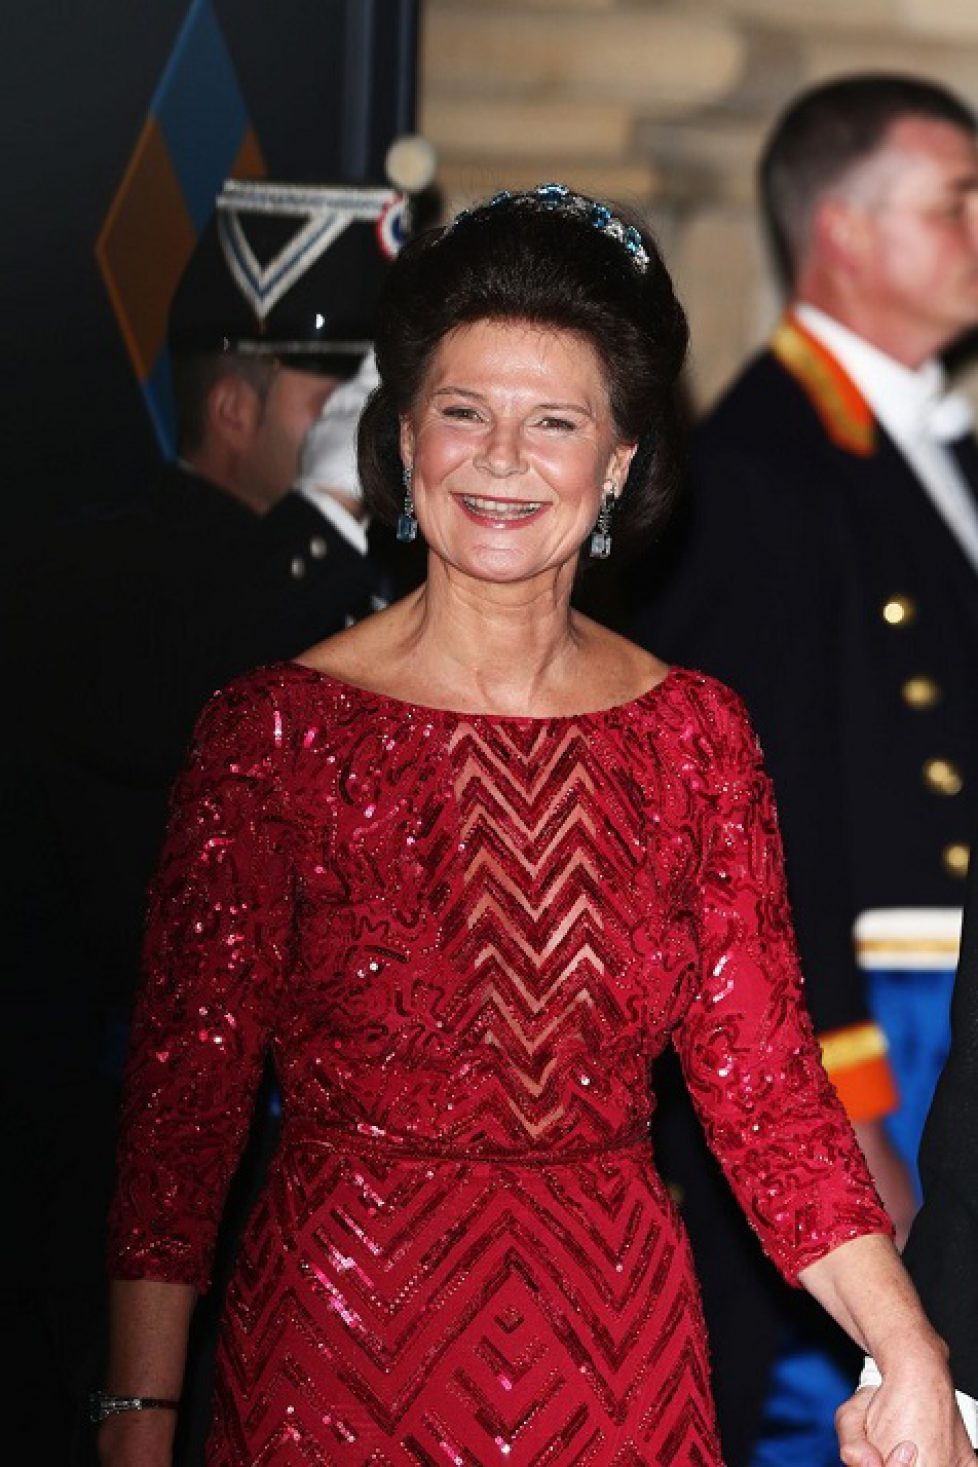 Princess-Margaretha-of-Liechtenstein-Wearing-Elie-Saab-At-The-Pre-Wedding-Gala-Dinner-in-Luxembourg-2